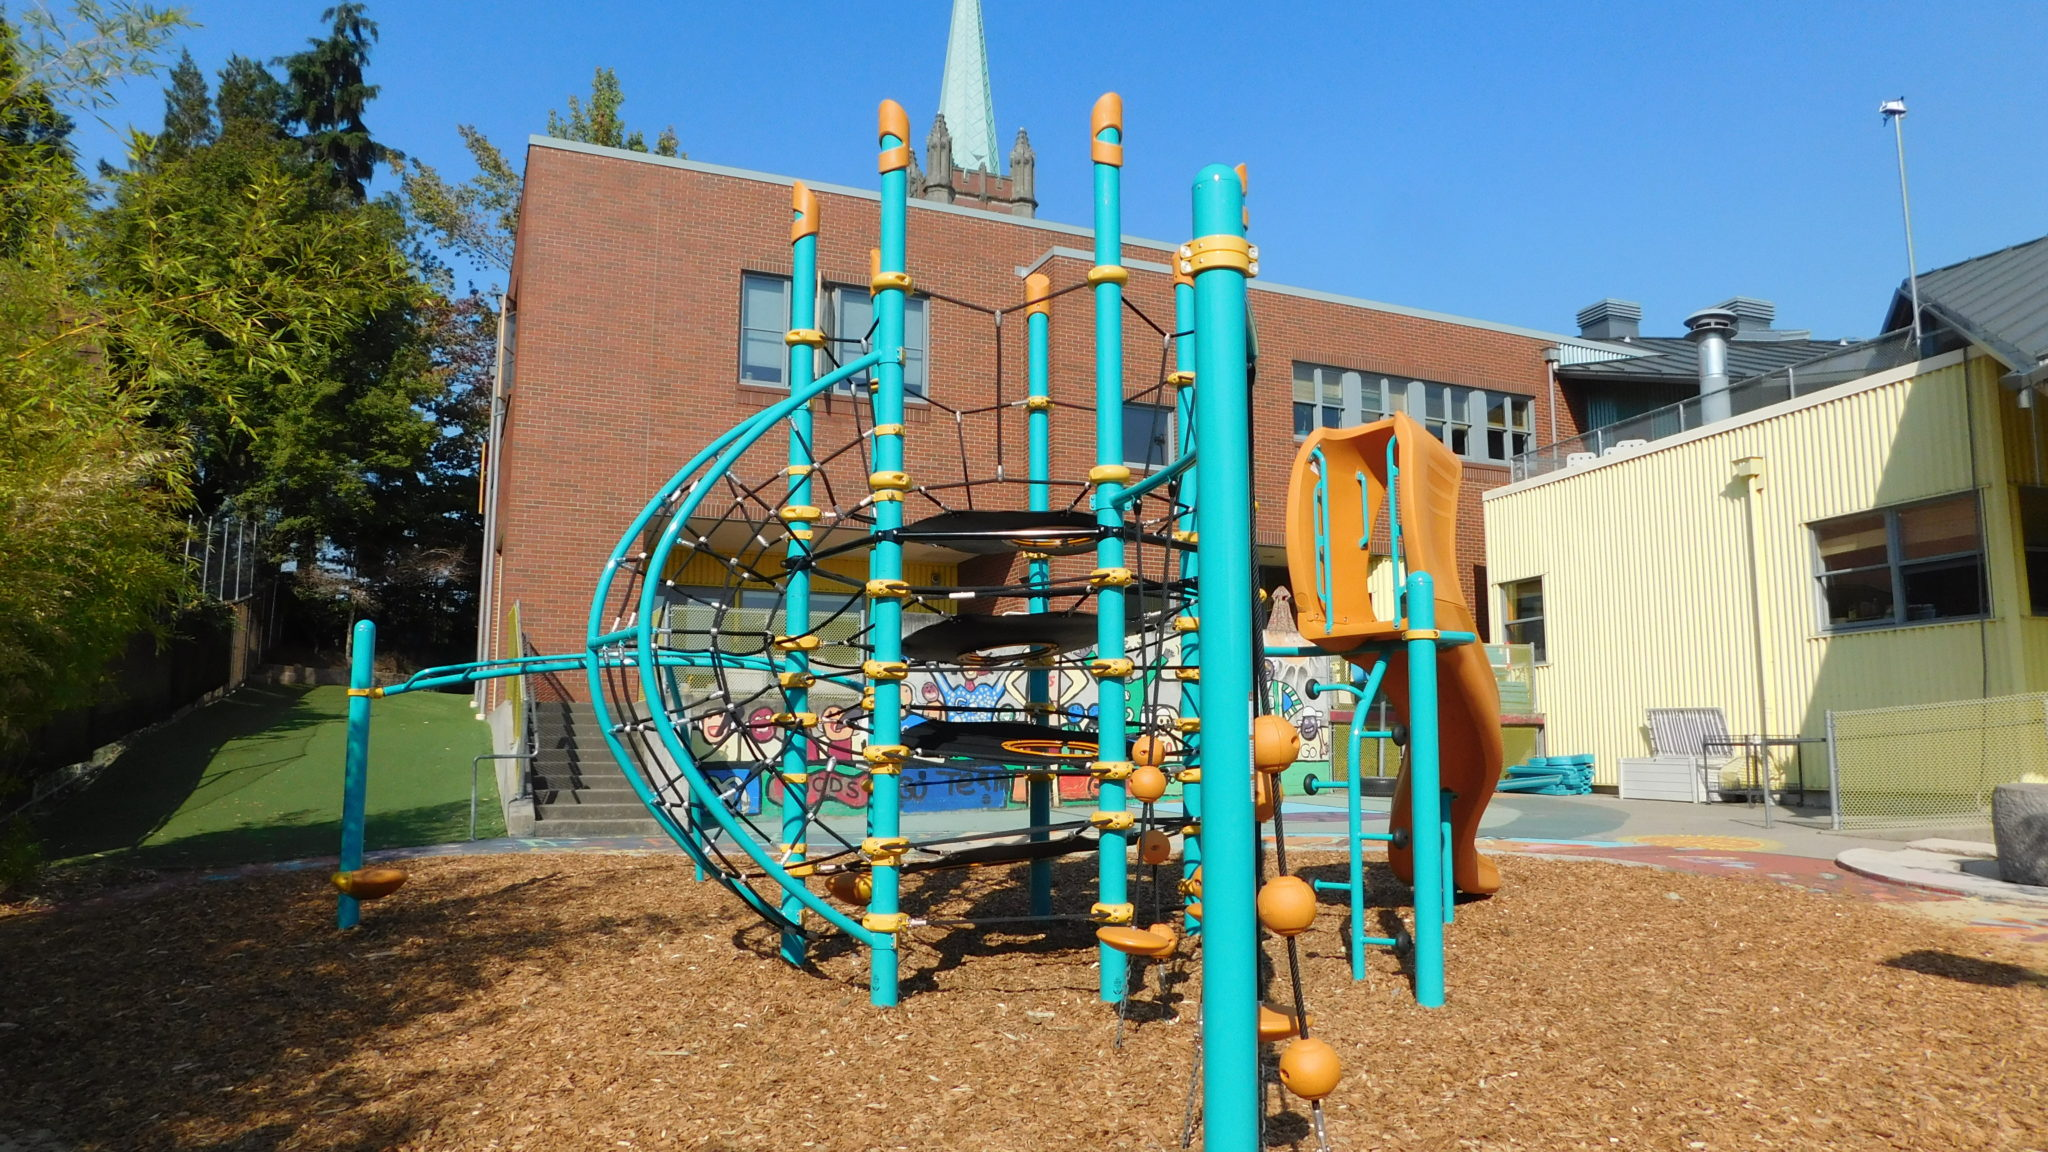 University Child Development School Playground